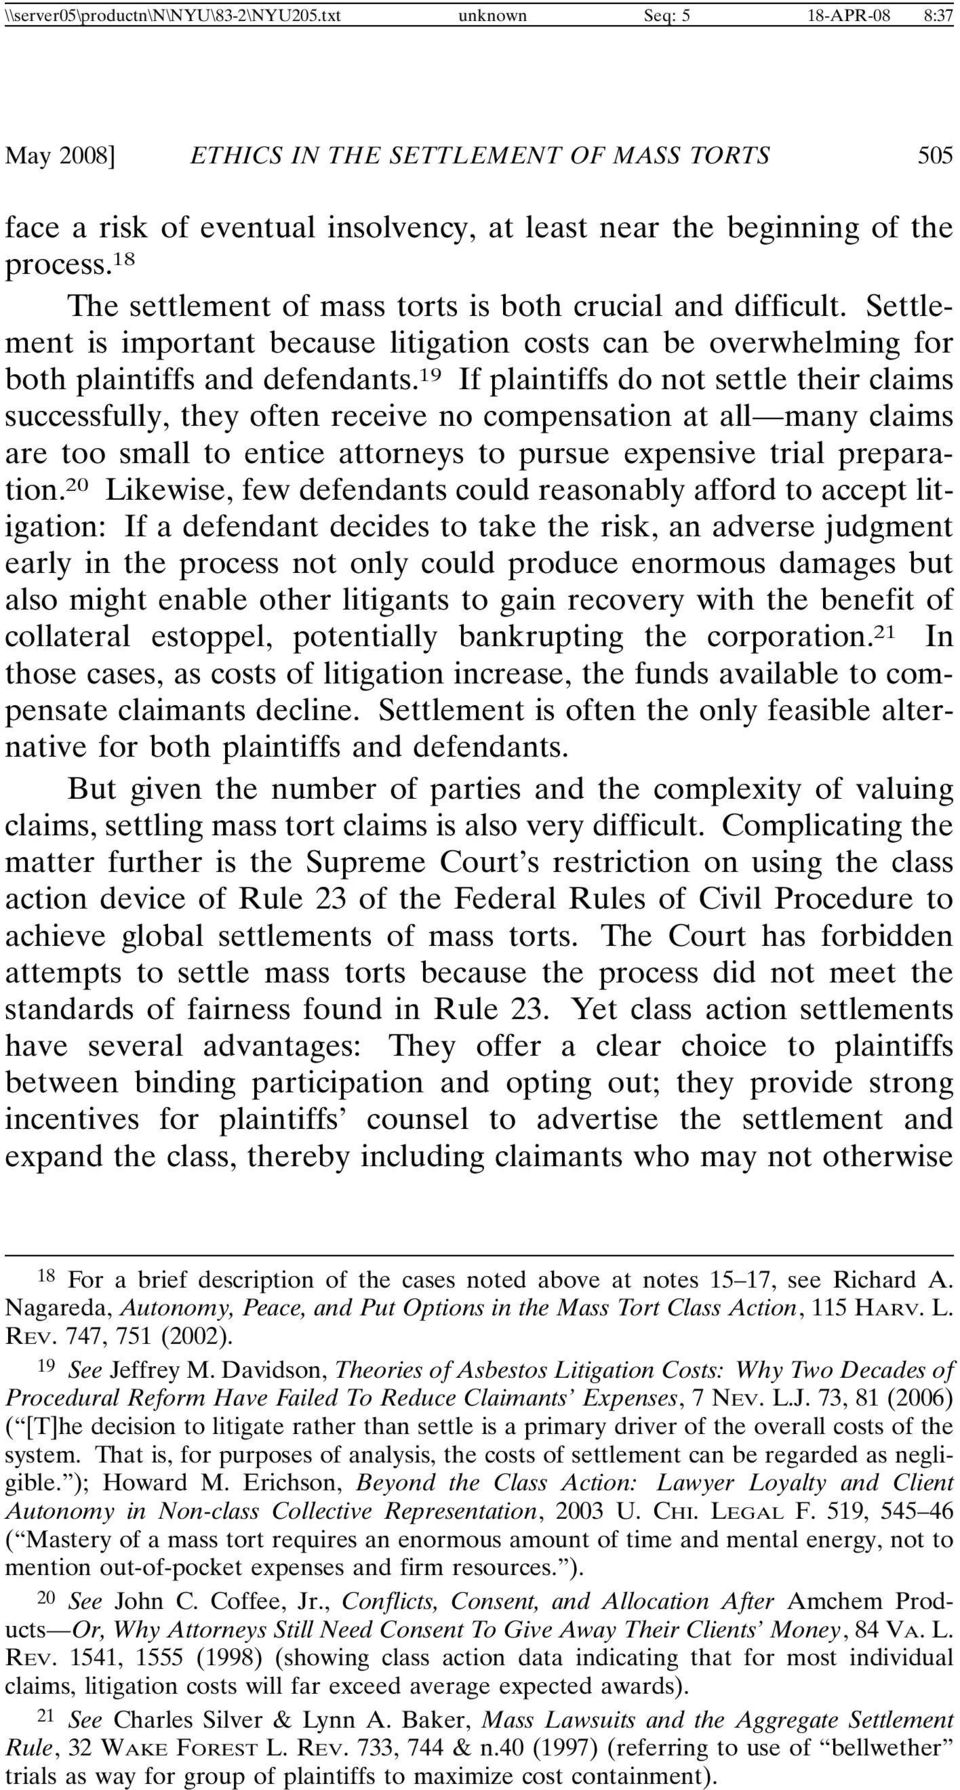 18 The settlement of mass torts is both crucial and difficult. Settlement is important because litigation costs can be overwhelming for both plaintiffs and defendants.